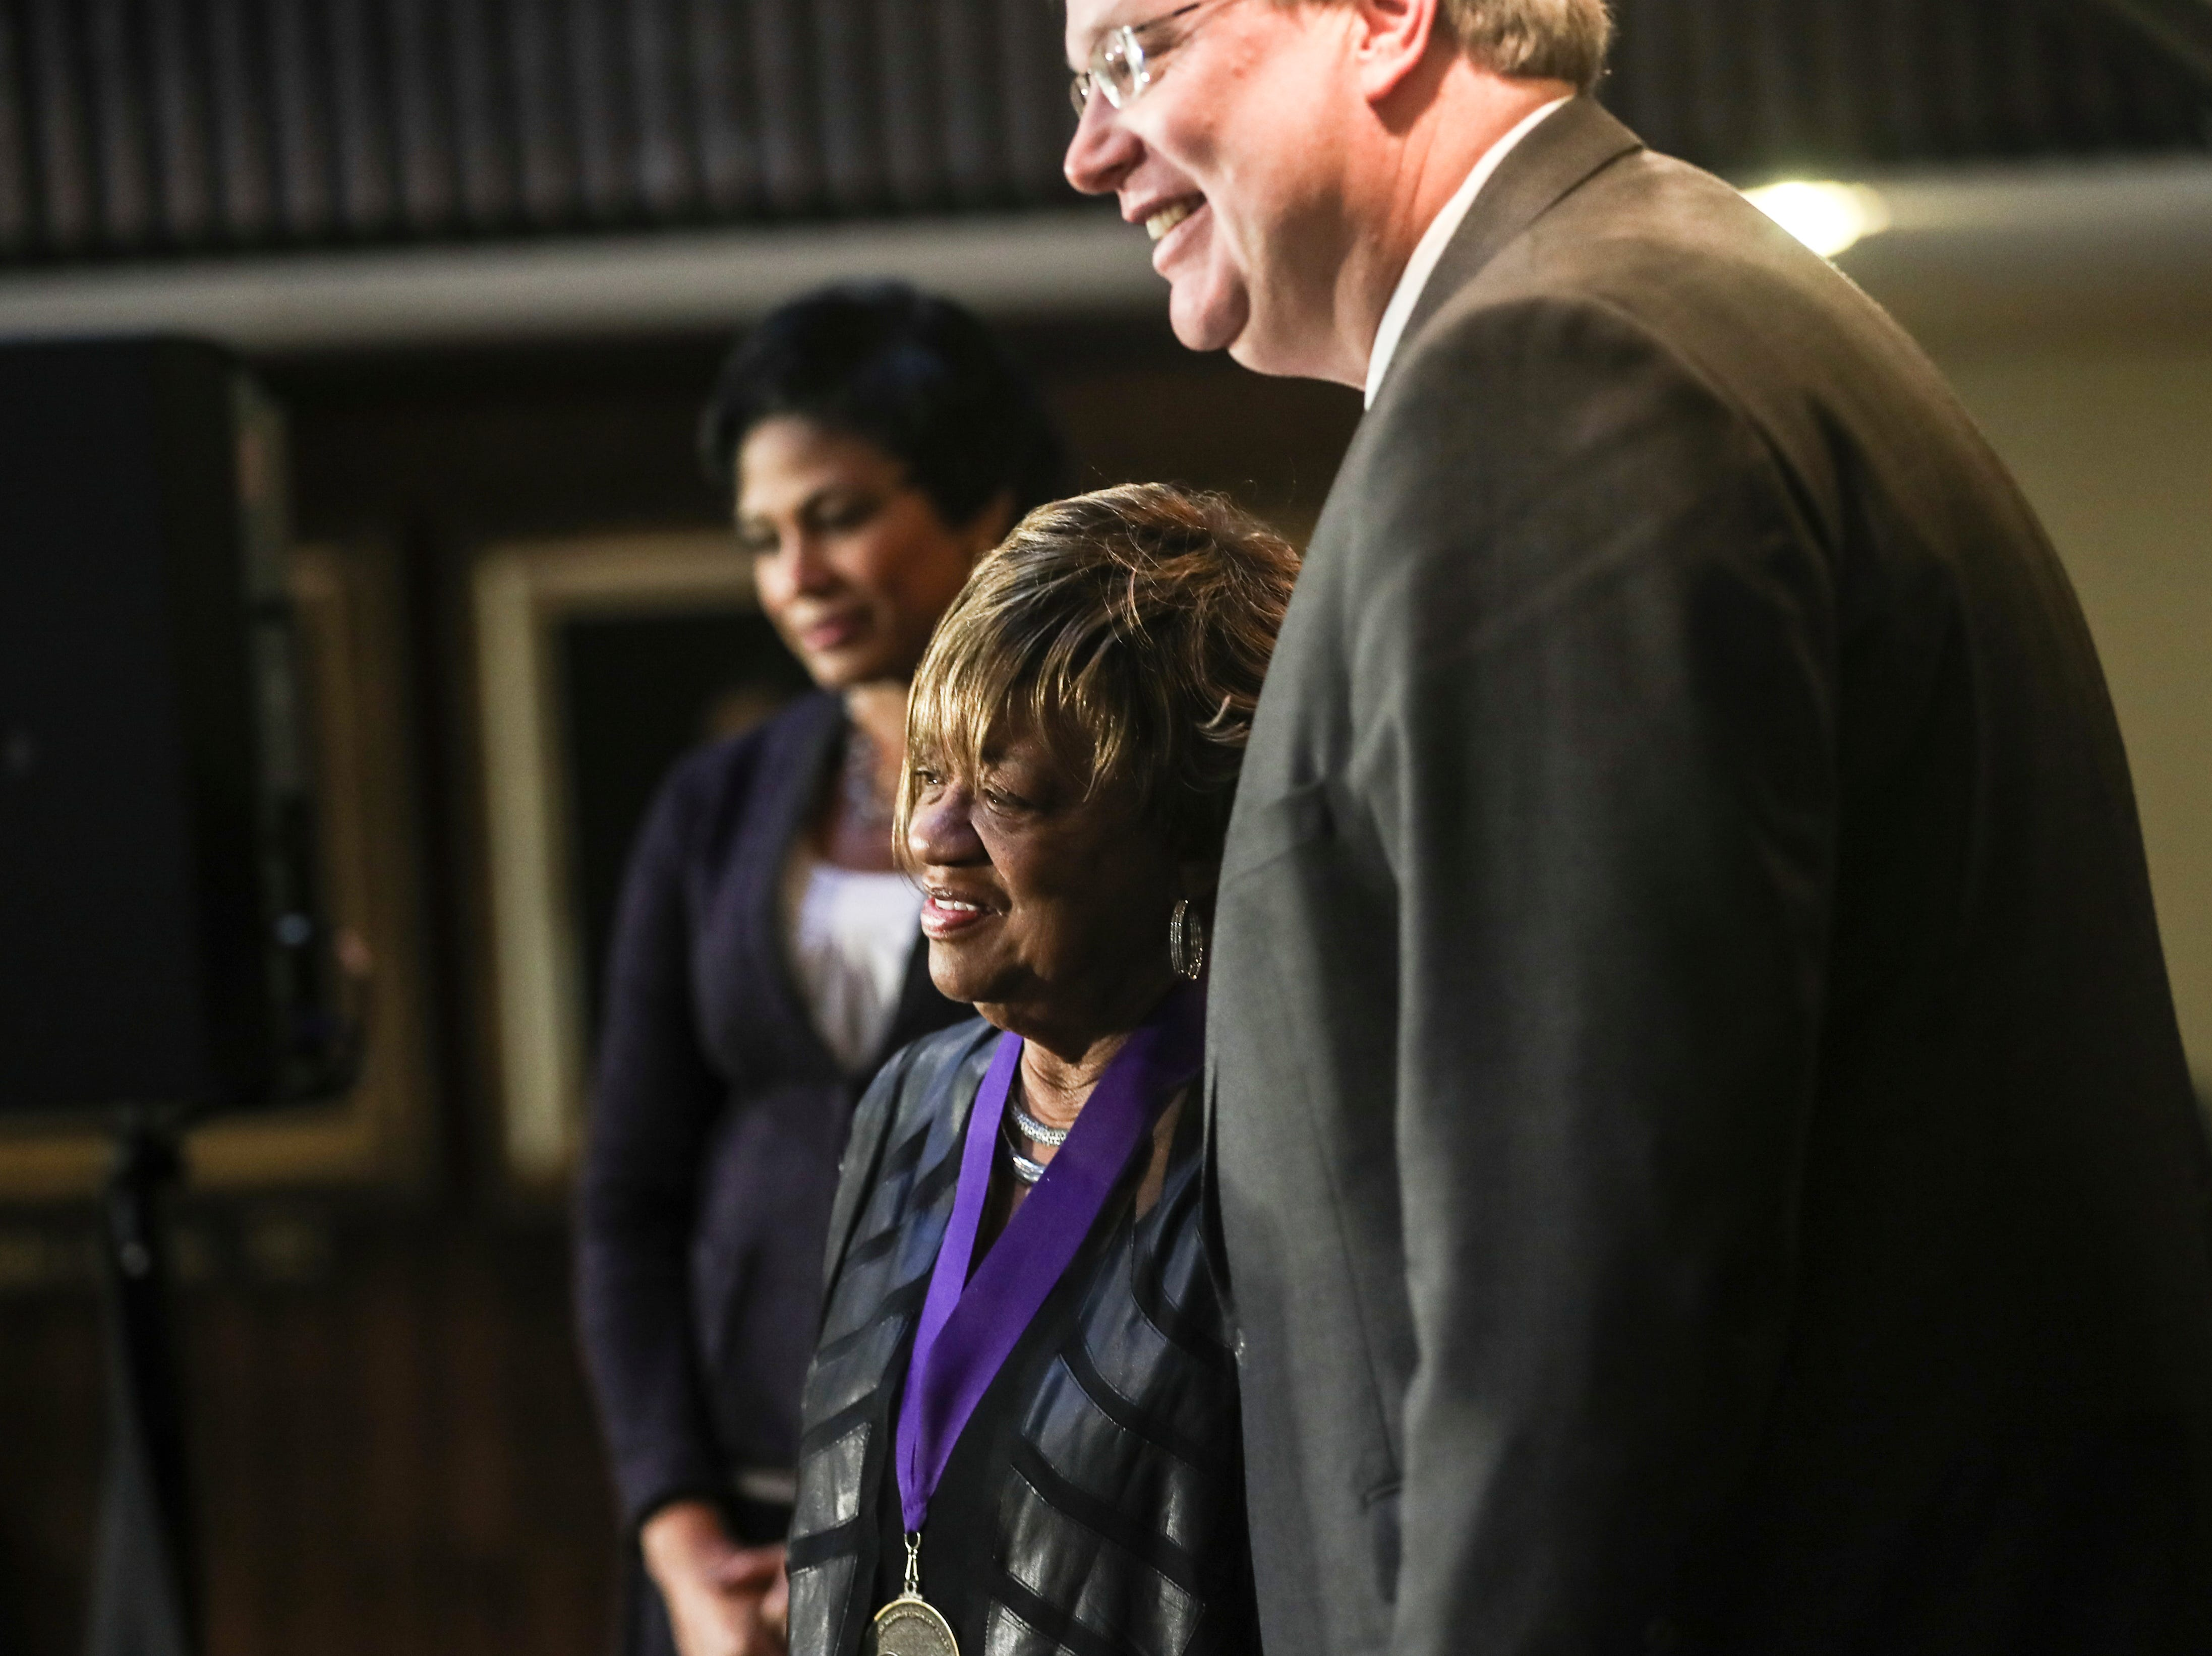 January 21 2019 - Hazel Moore poses for a picture with Memphis Mayor Jim Strickland after receiving her award during the 2019 MLK Luminary Awards at the Hall of Mayors in City Hall.